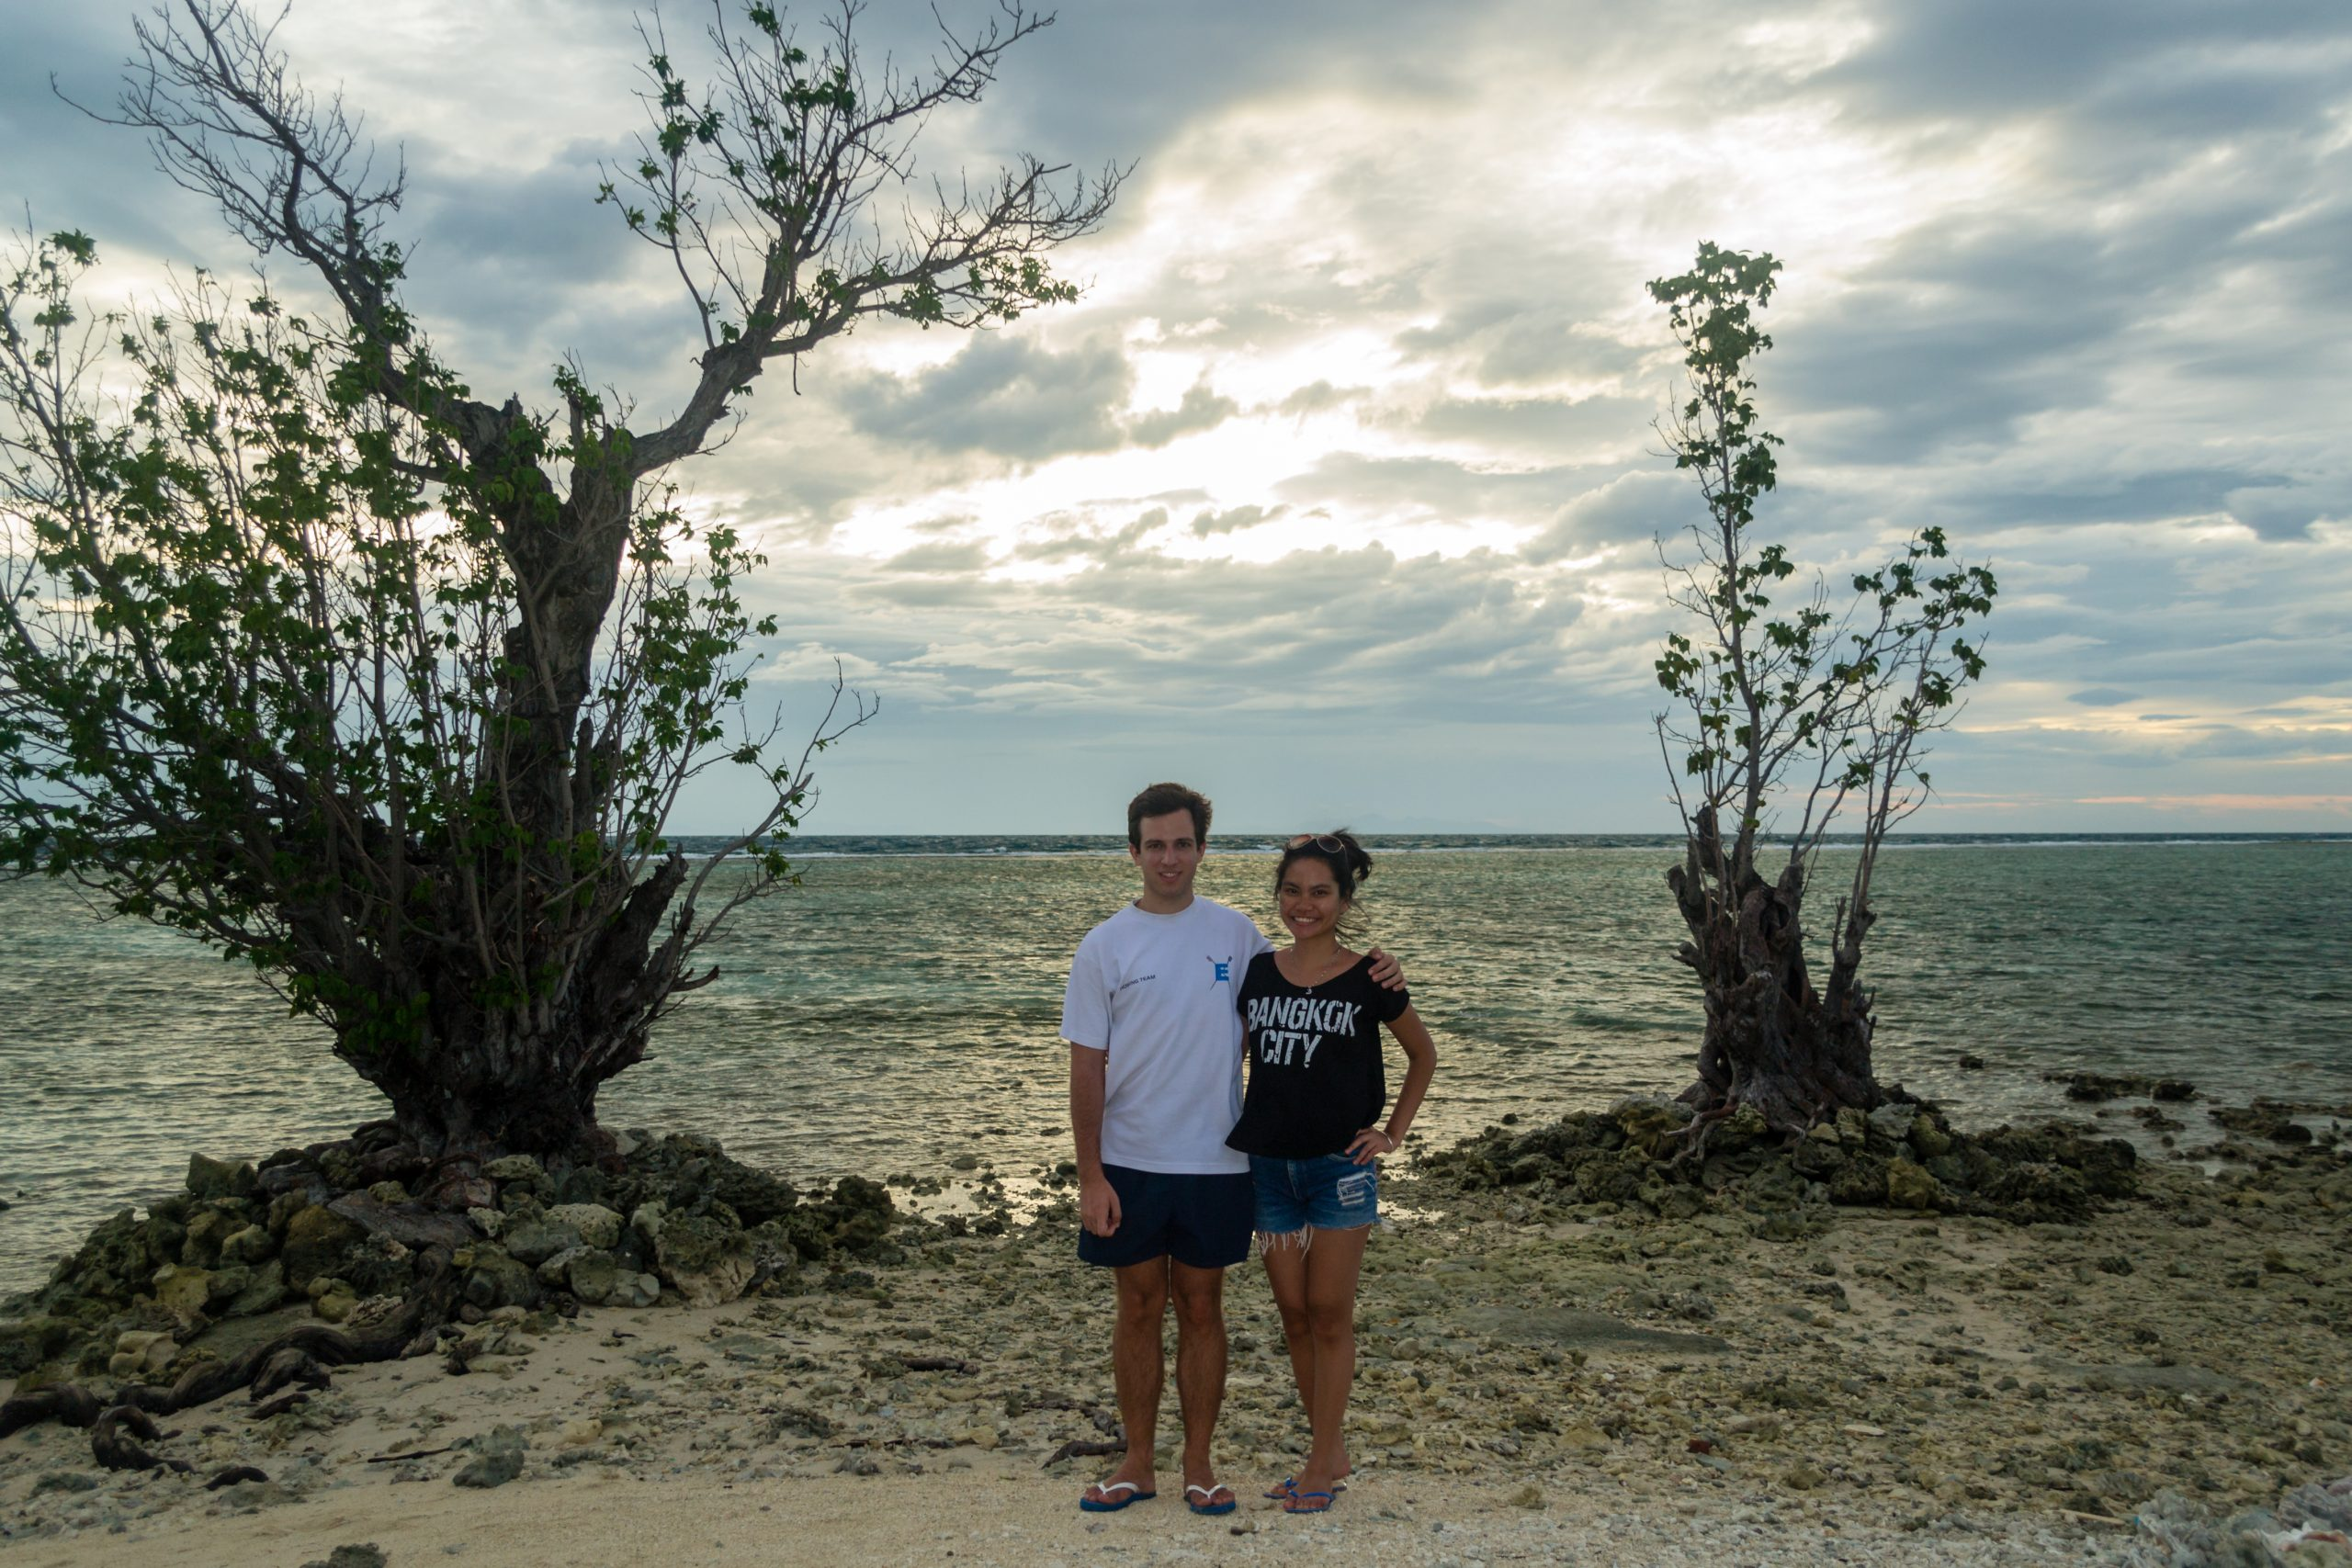 (Pulau Tidung, Thousand Islands, Indonesia) Two Student Travelers find each other and the most beautiful beaches.